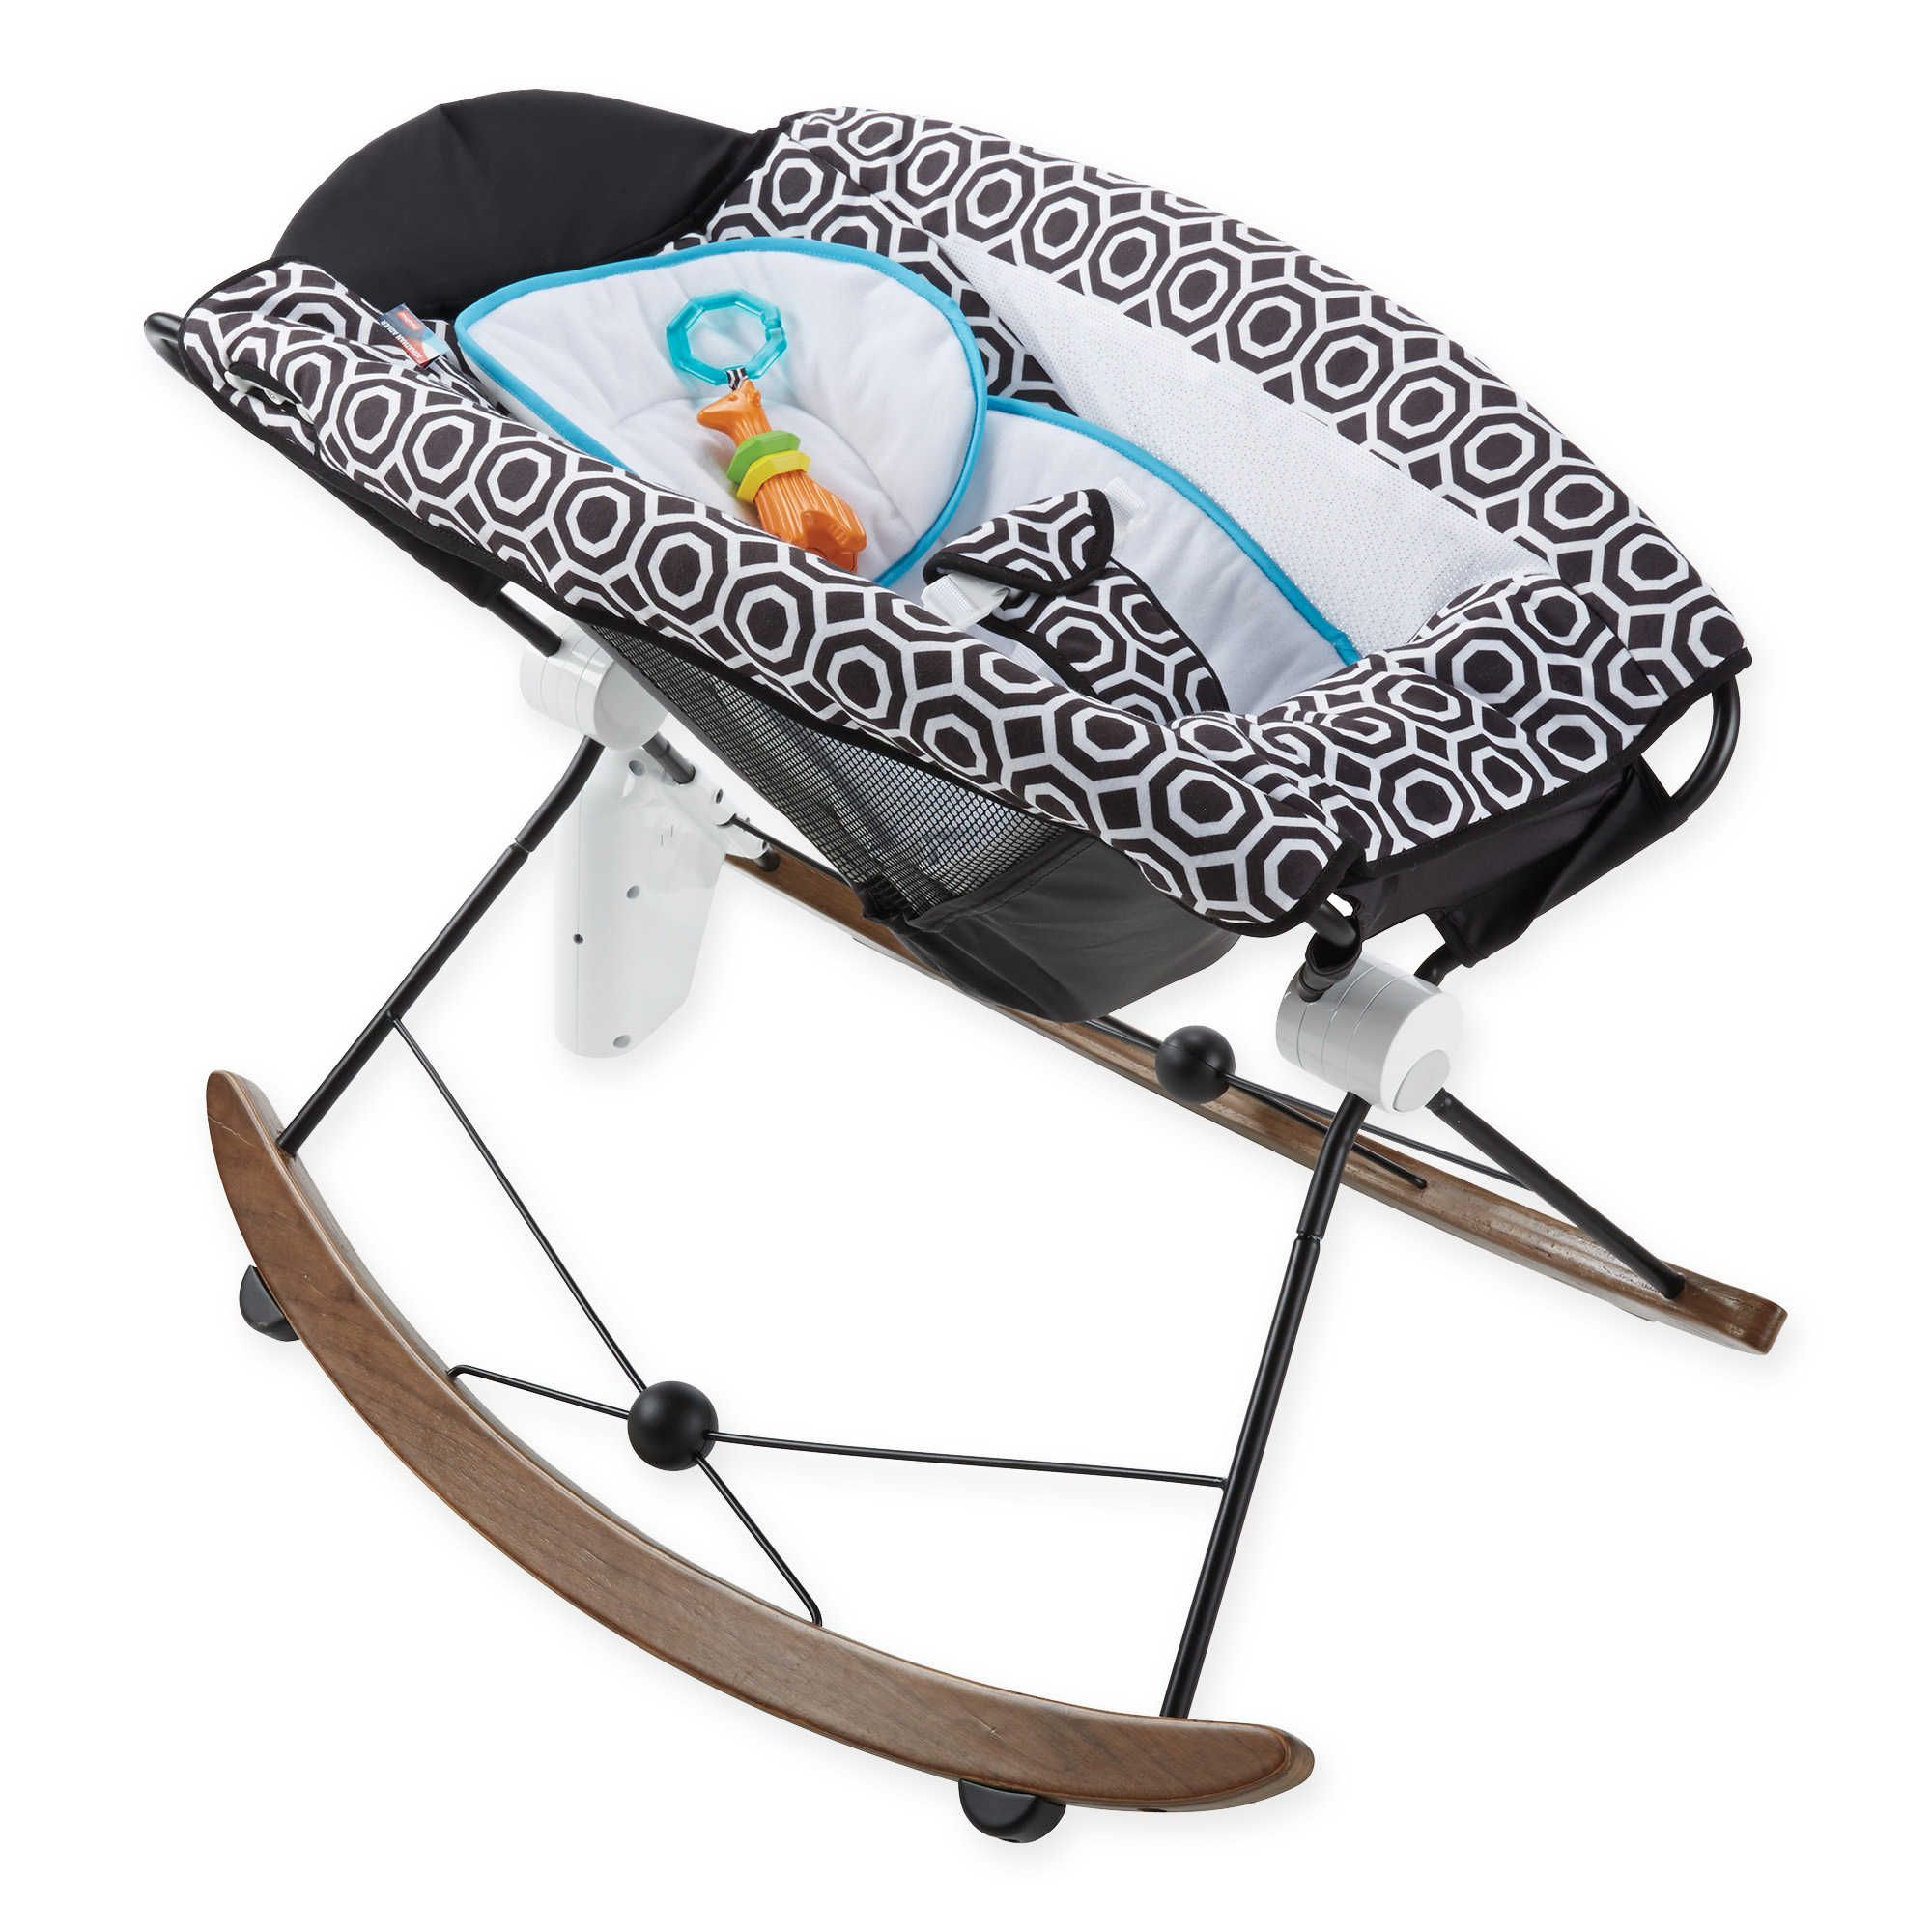 Jonathan Adler Crafted by Fisher Price Deluxe Rock n Play